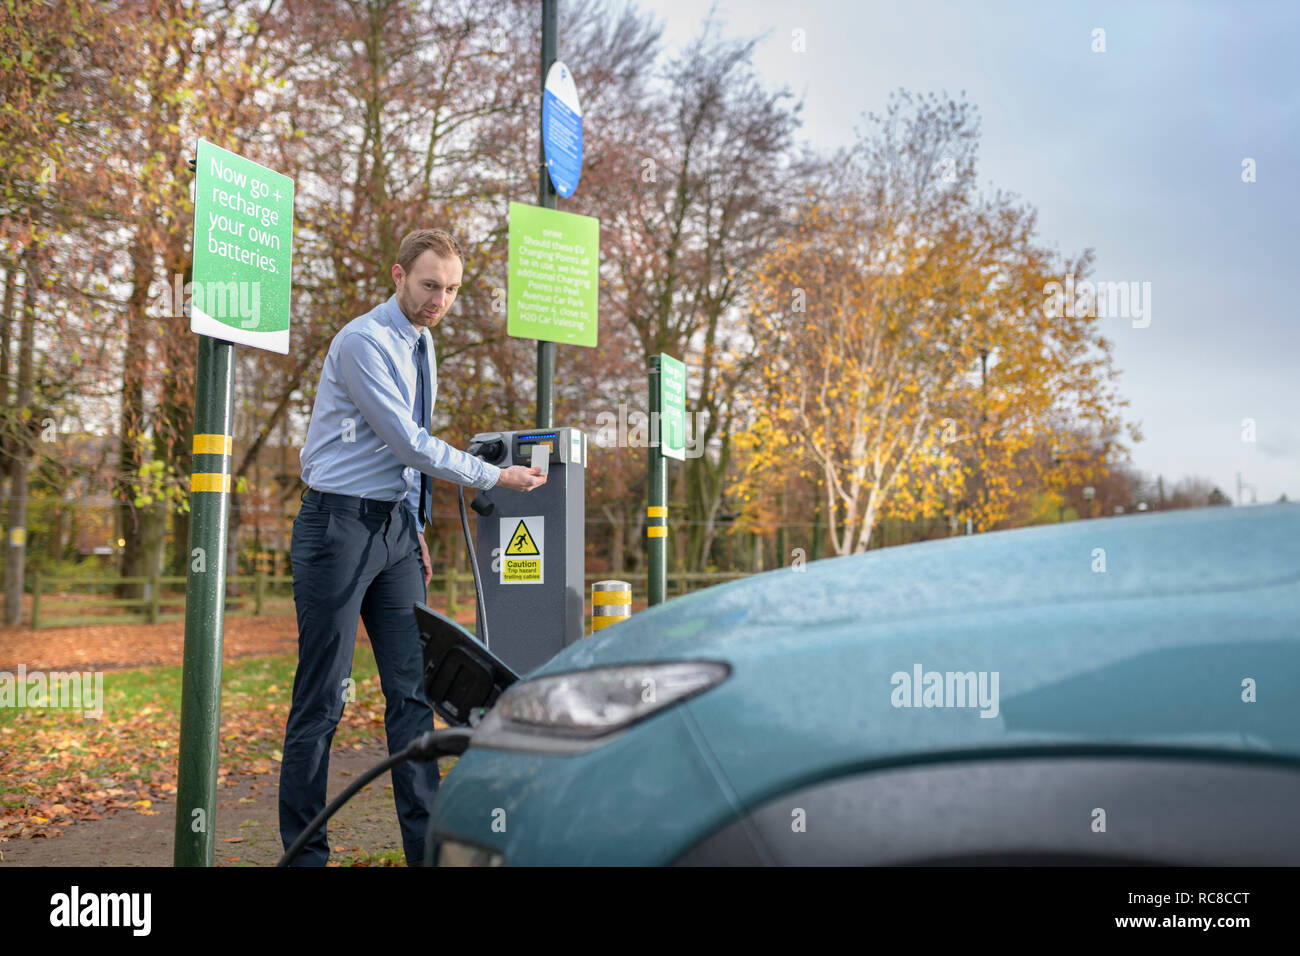 Man charging electric car at charge point, Manchester, UK - Stock Image